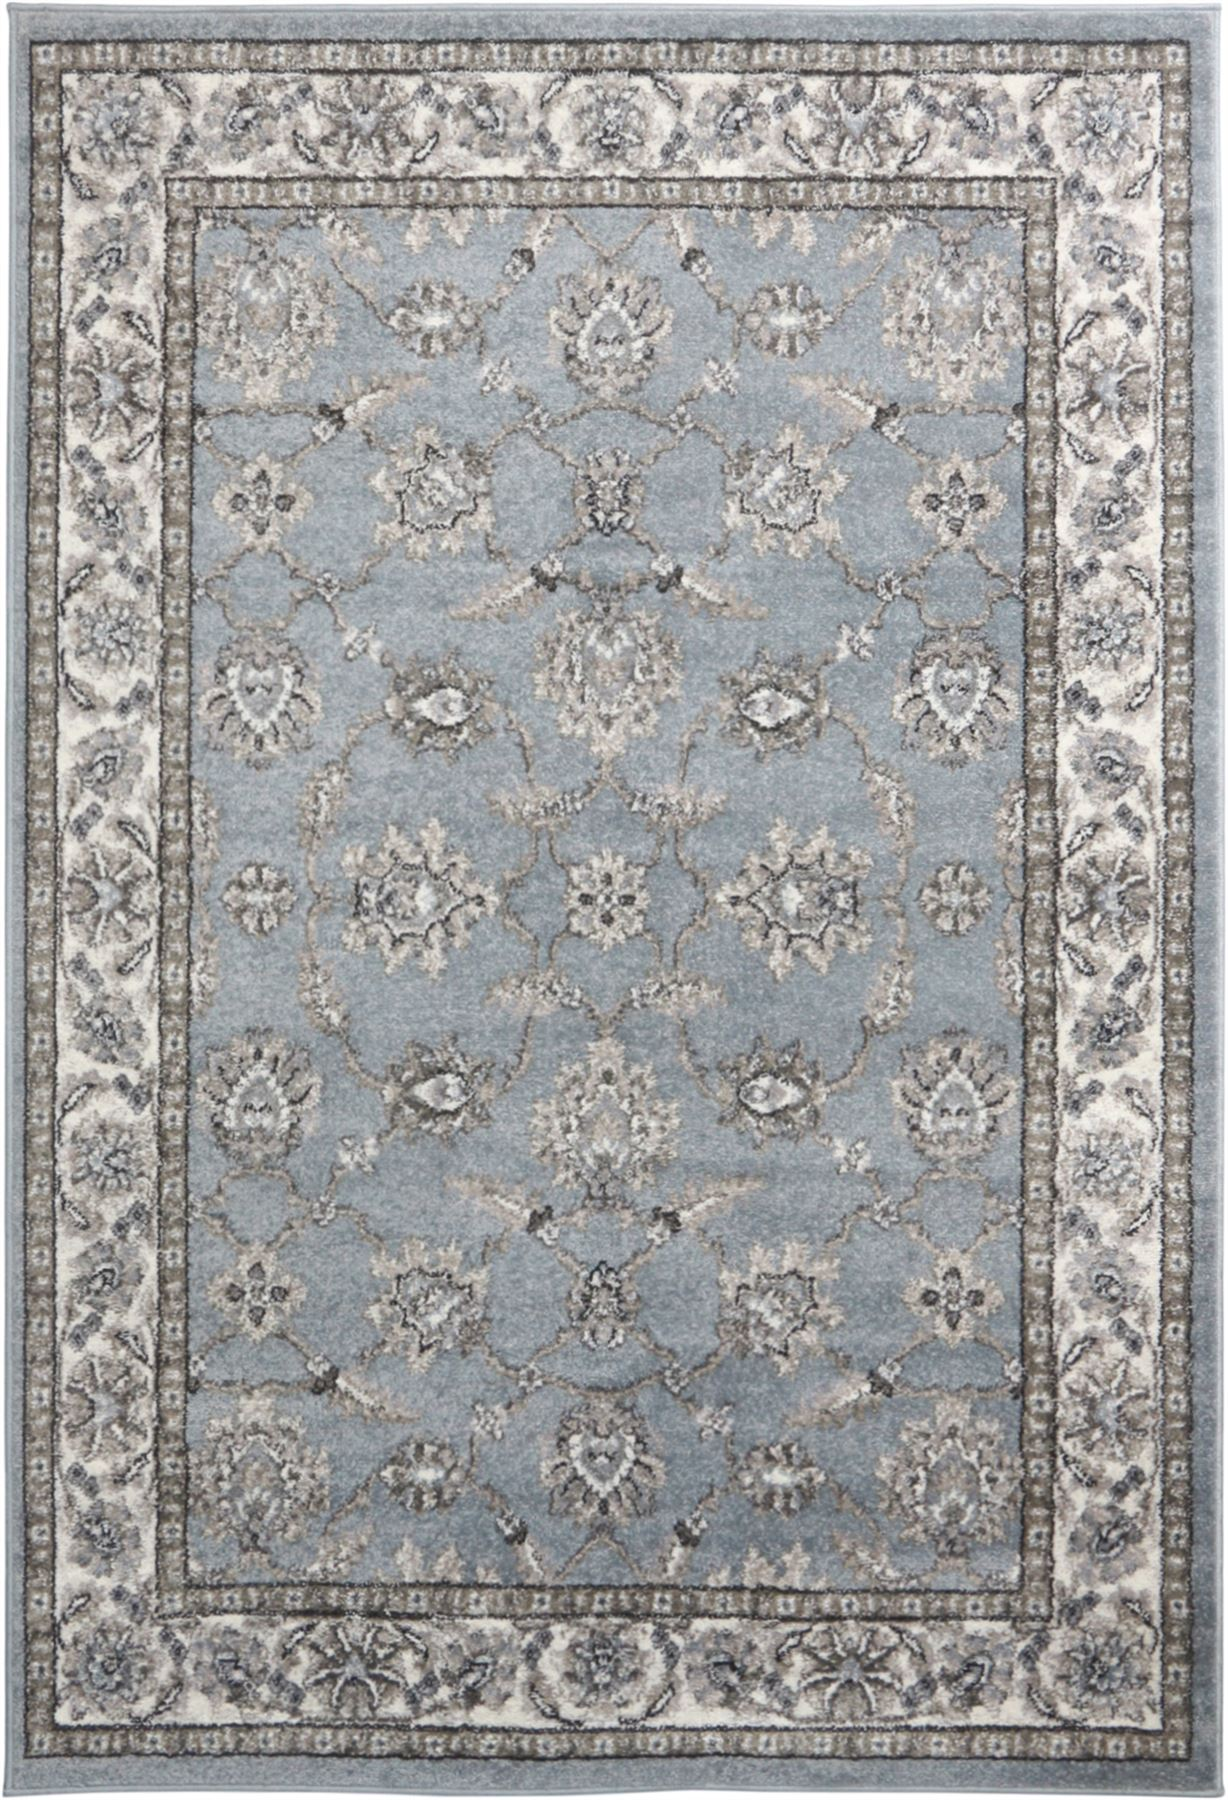 Large-Quality-Traditional-Area-Rug-Assorted-Persian-Floral-Designs-Carpet-Runner thumbnail 11